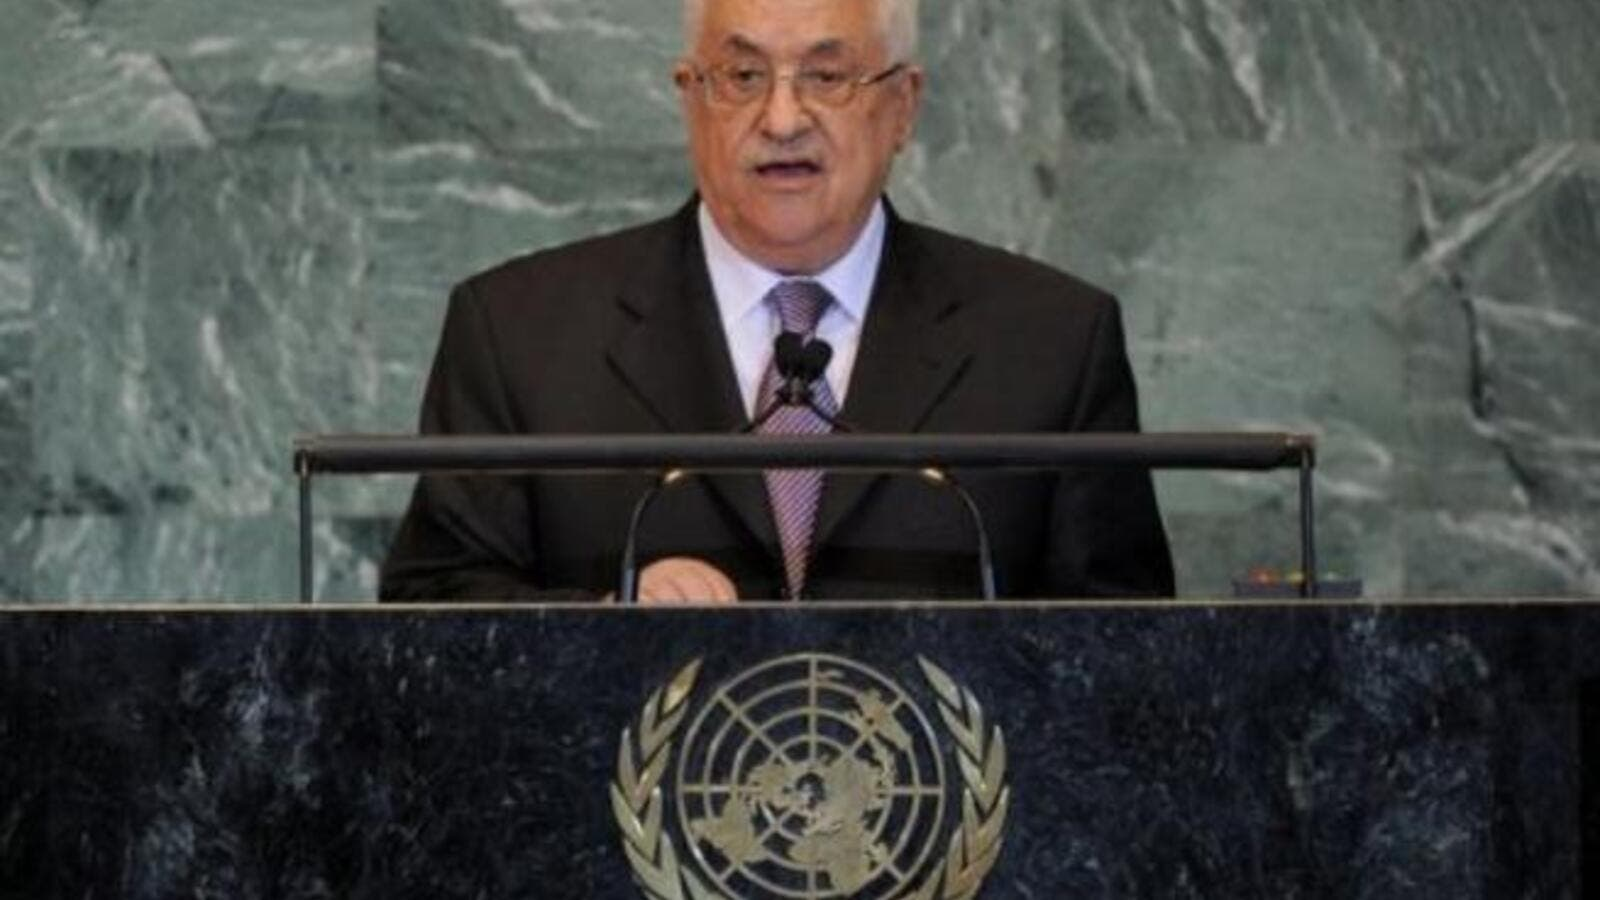 Palestinian Authority President Mahmoud Abbas pictured at the United Nations. (AFP/File)